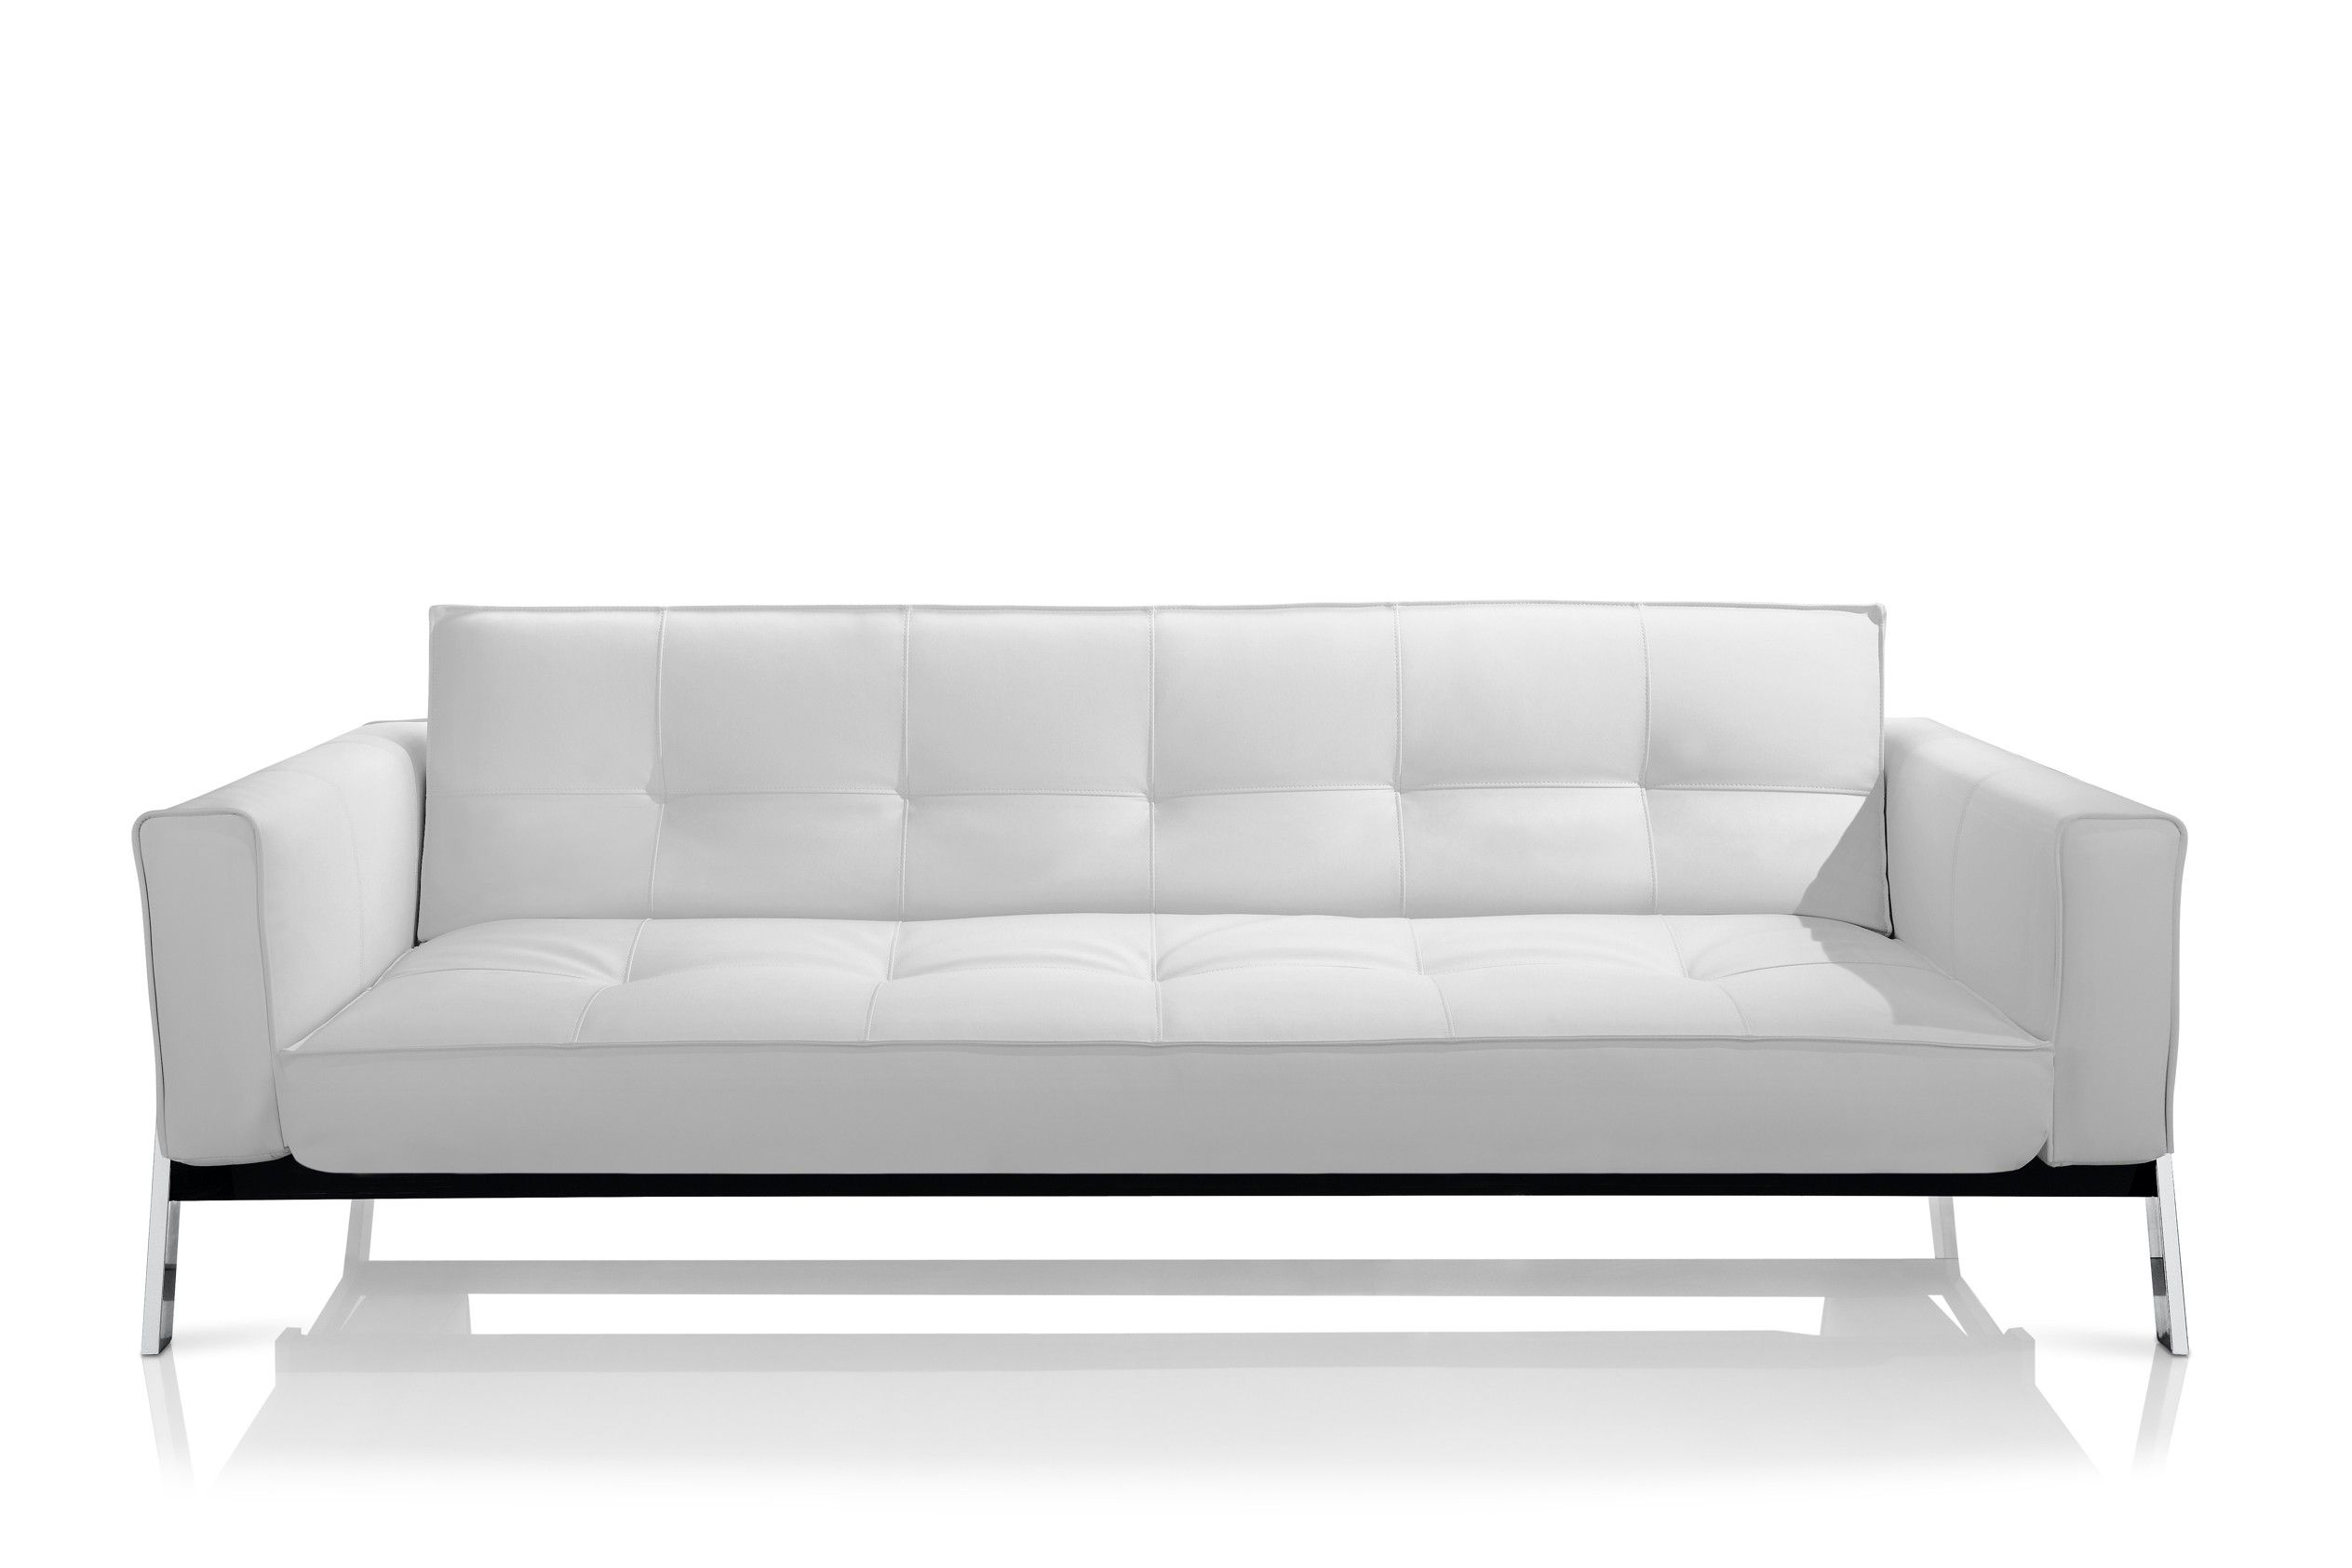 awesome White Fabric Sofa New White Fabric Sofa 30 Sofas and